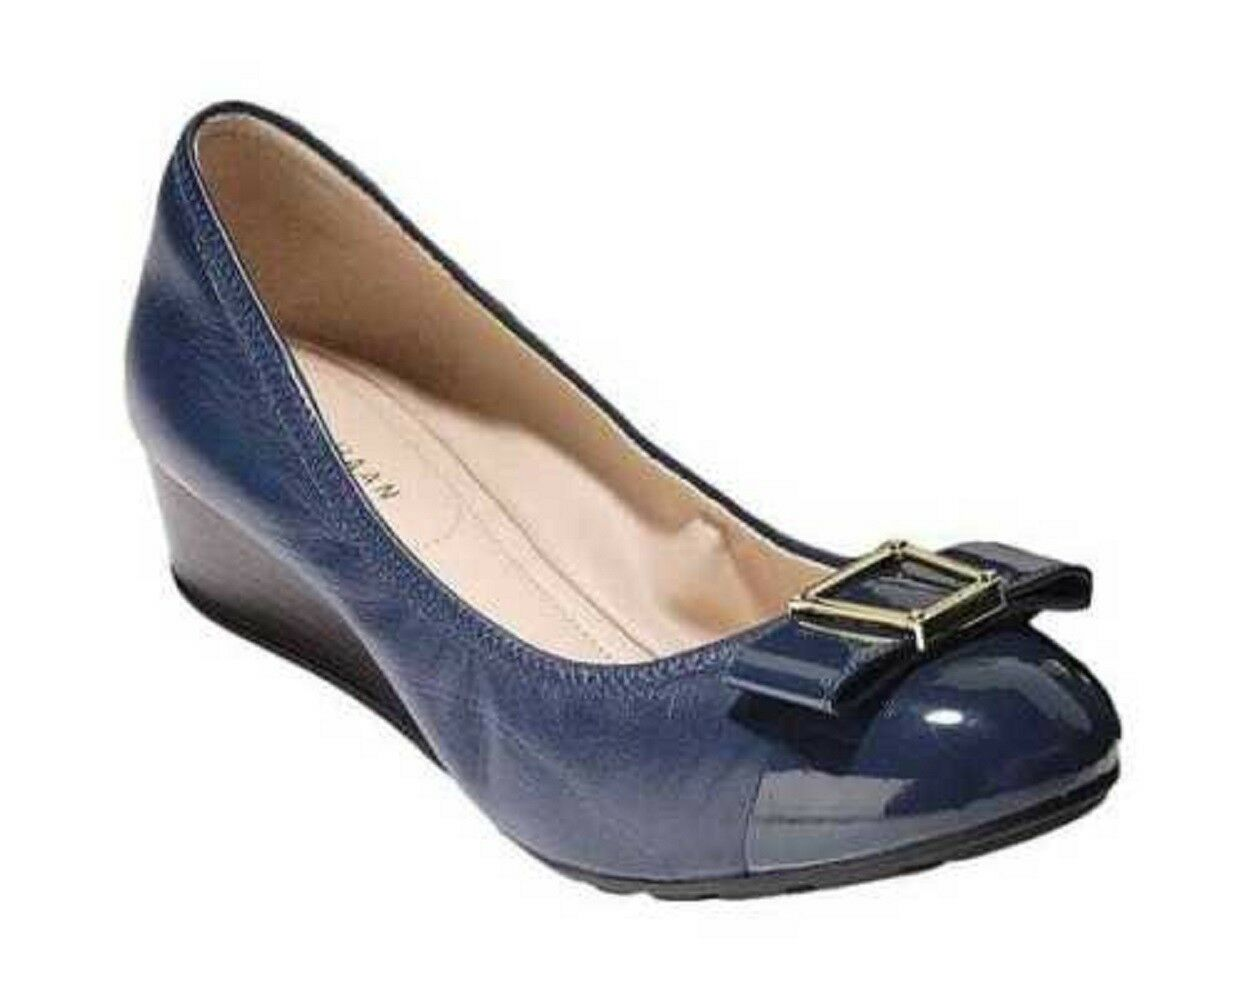 Cole Haan Womens Emory Bow Leather Wedge Dress shoes Marine bluee 7 NEW IN BOX